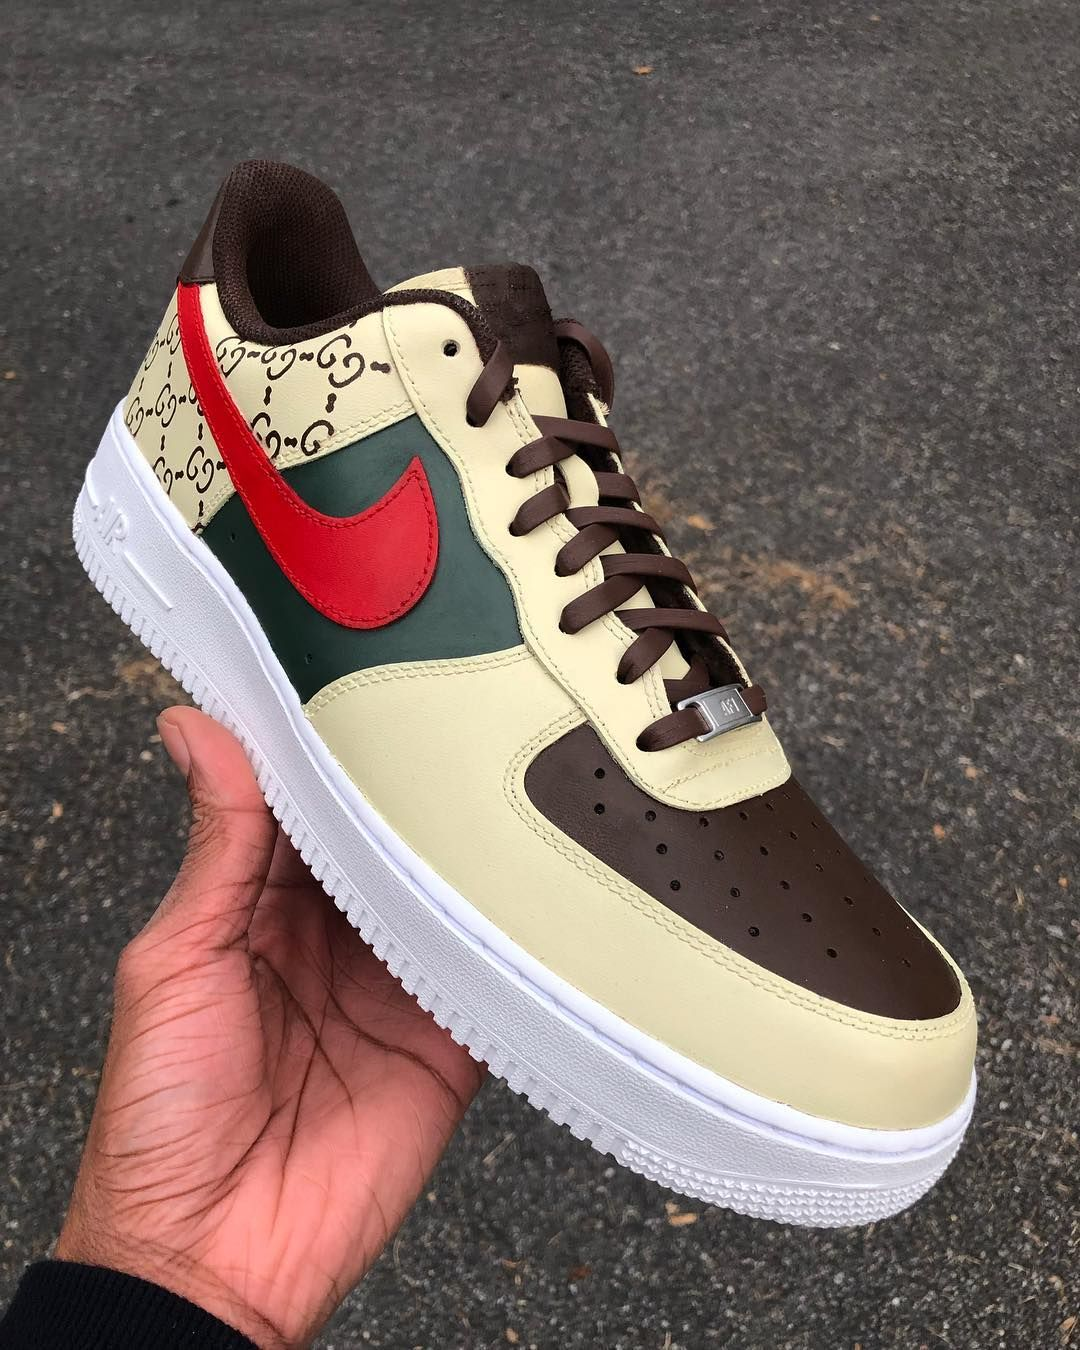 Image may contain shoes Hype shoes, Nike air force ones